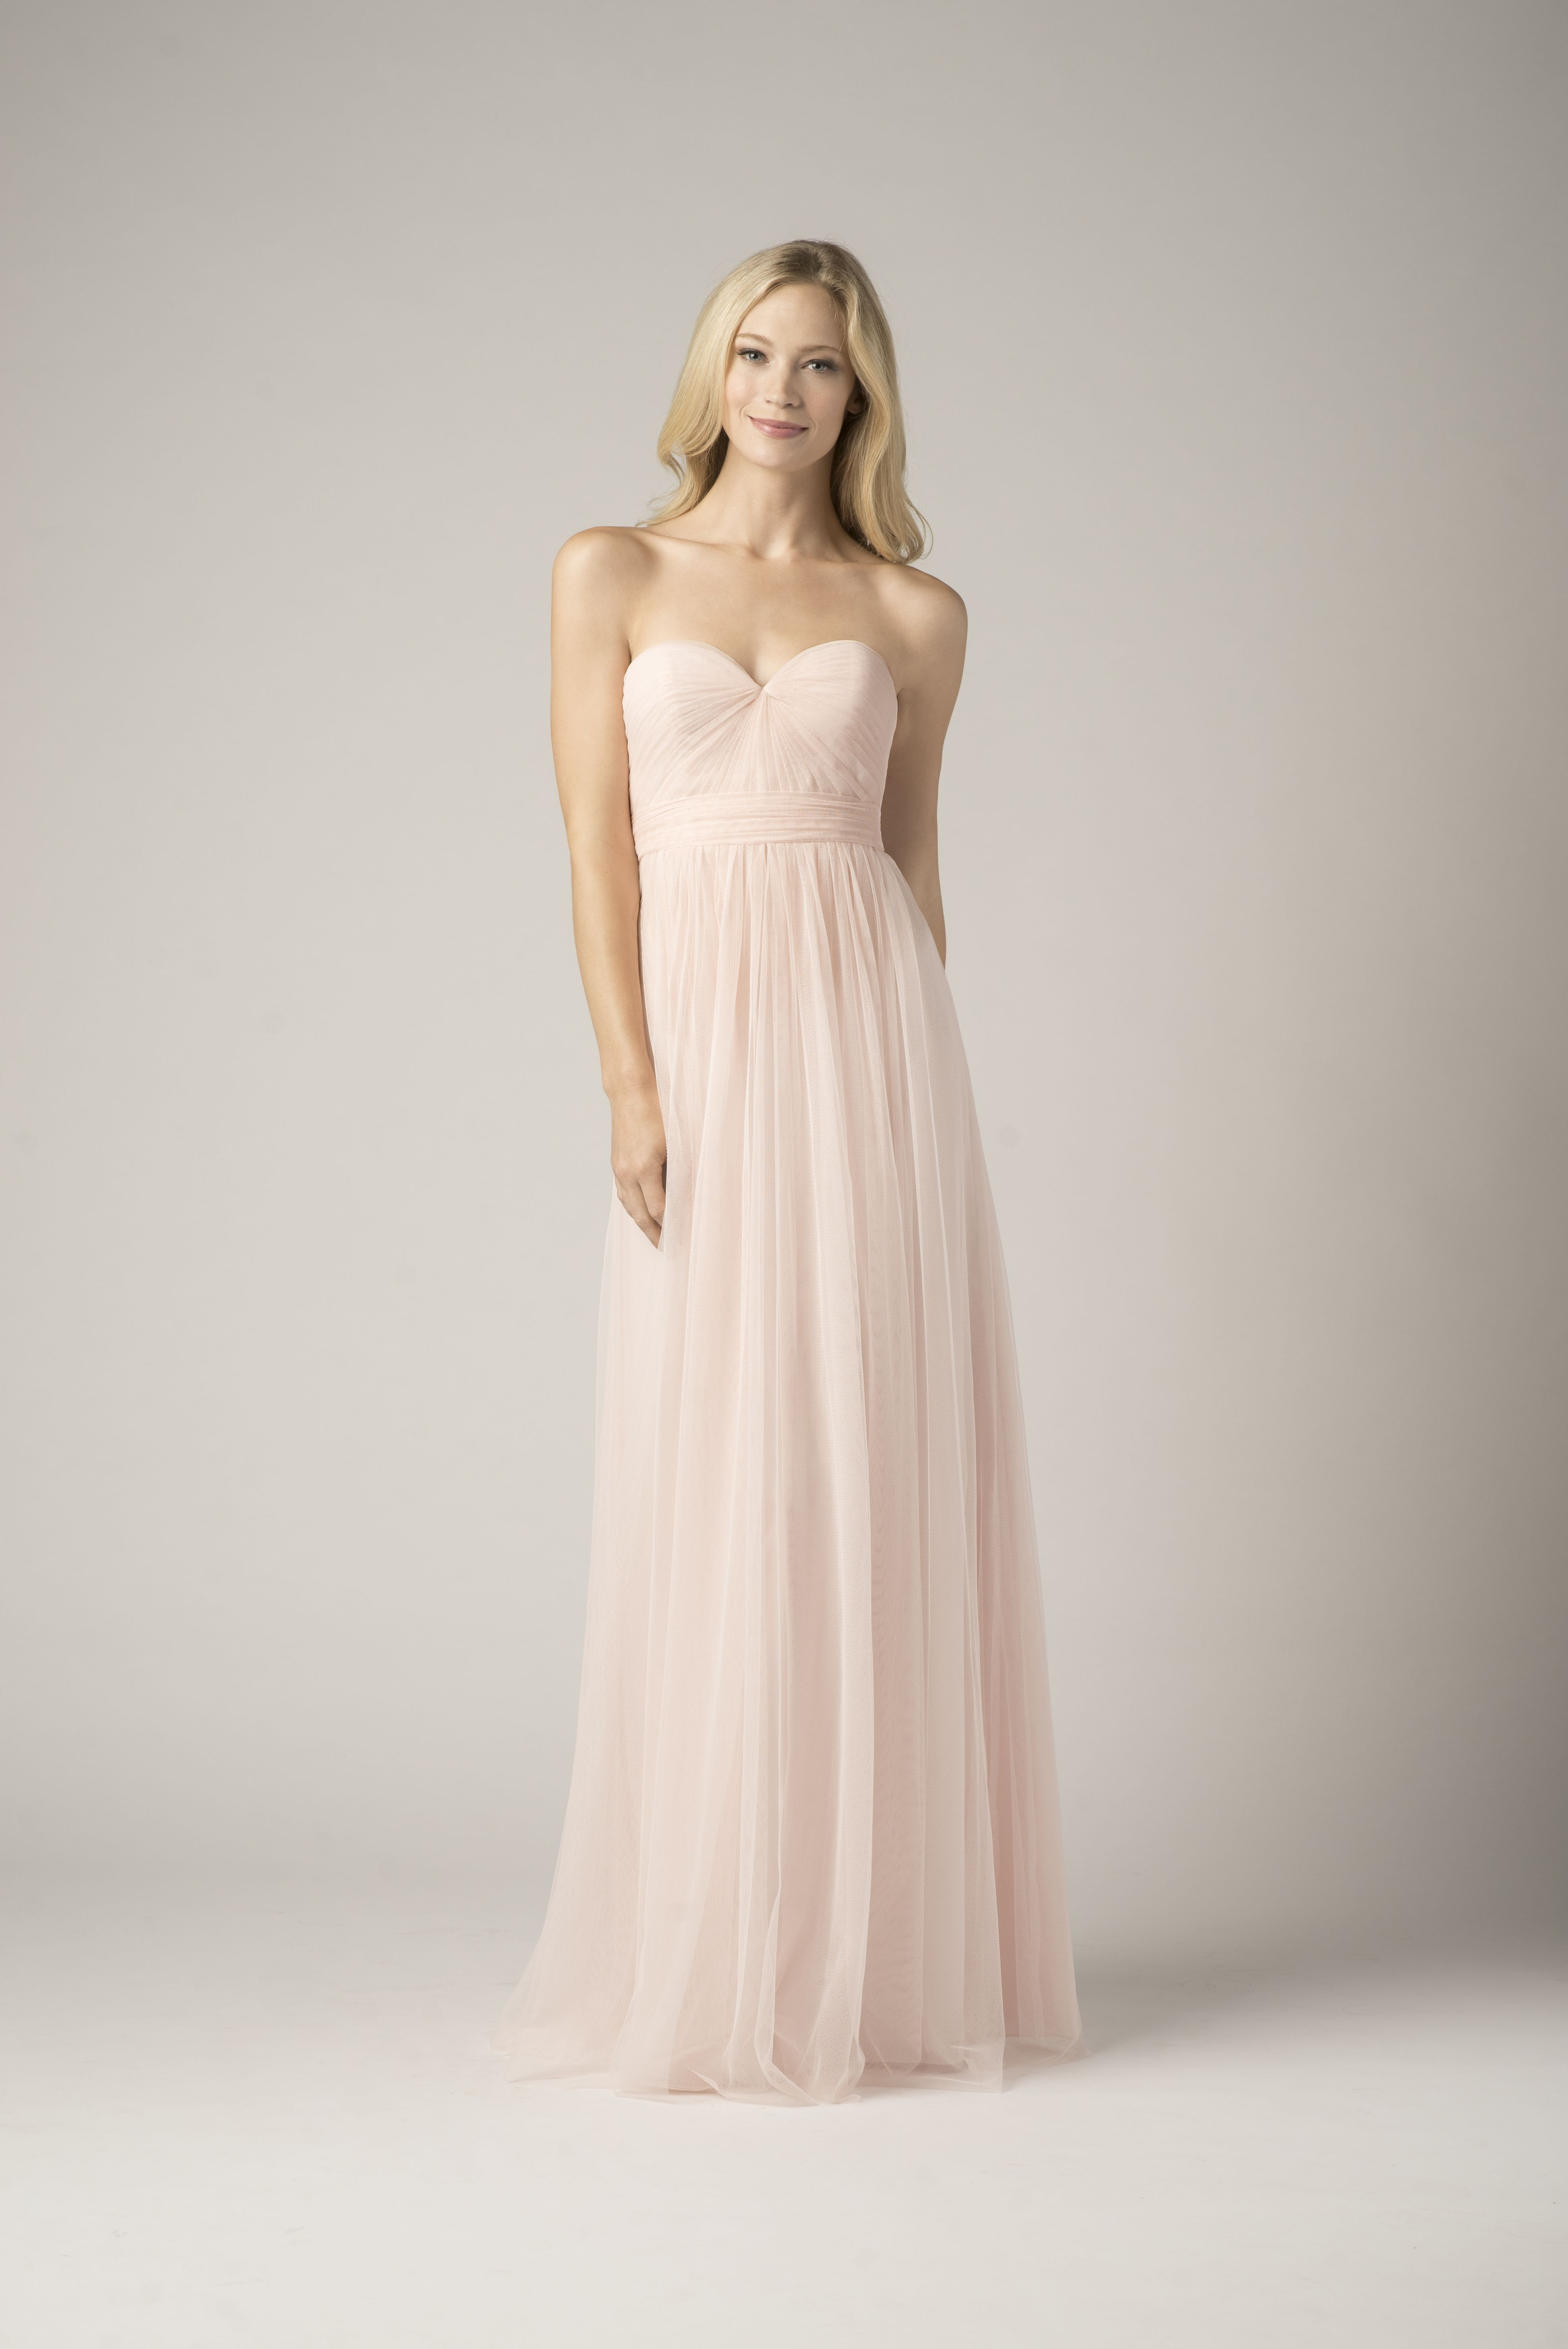 Outlet bridesmaid dresses color ice pink size 10 wtoo abba outlet bridesmaid dresses color ice pink size 10 wtoo ombrellifo Gallery